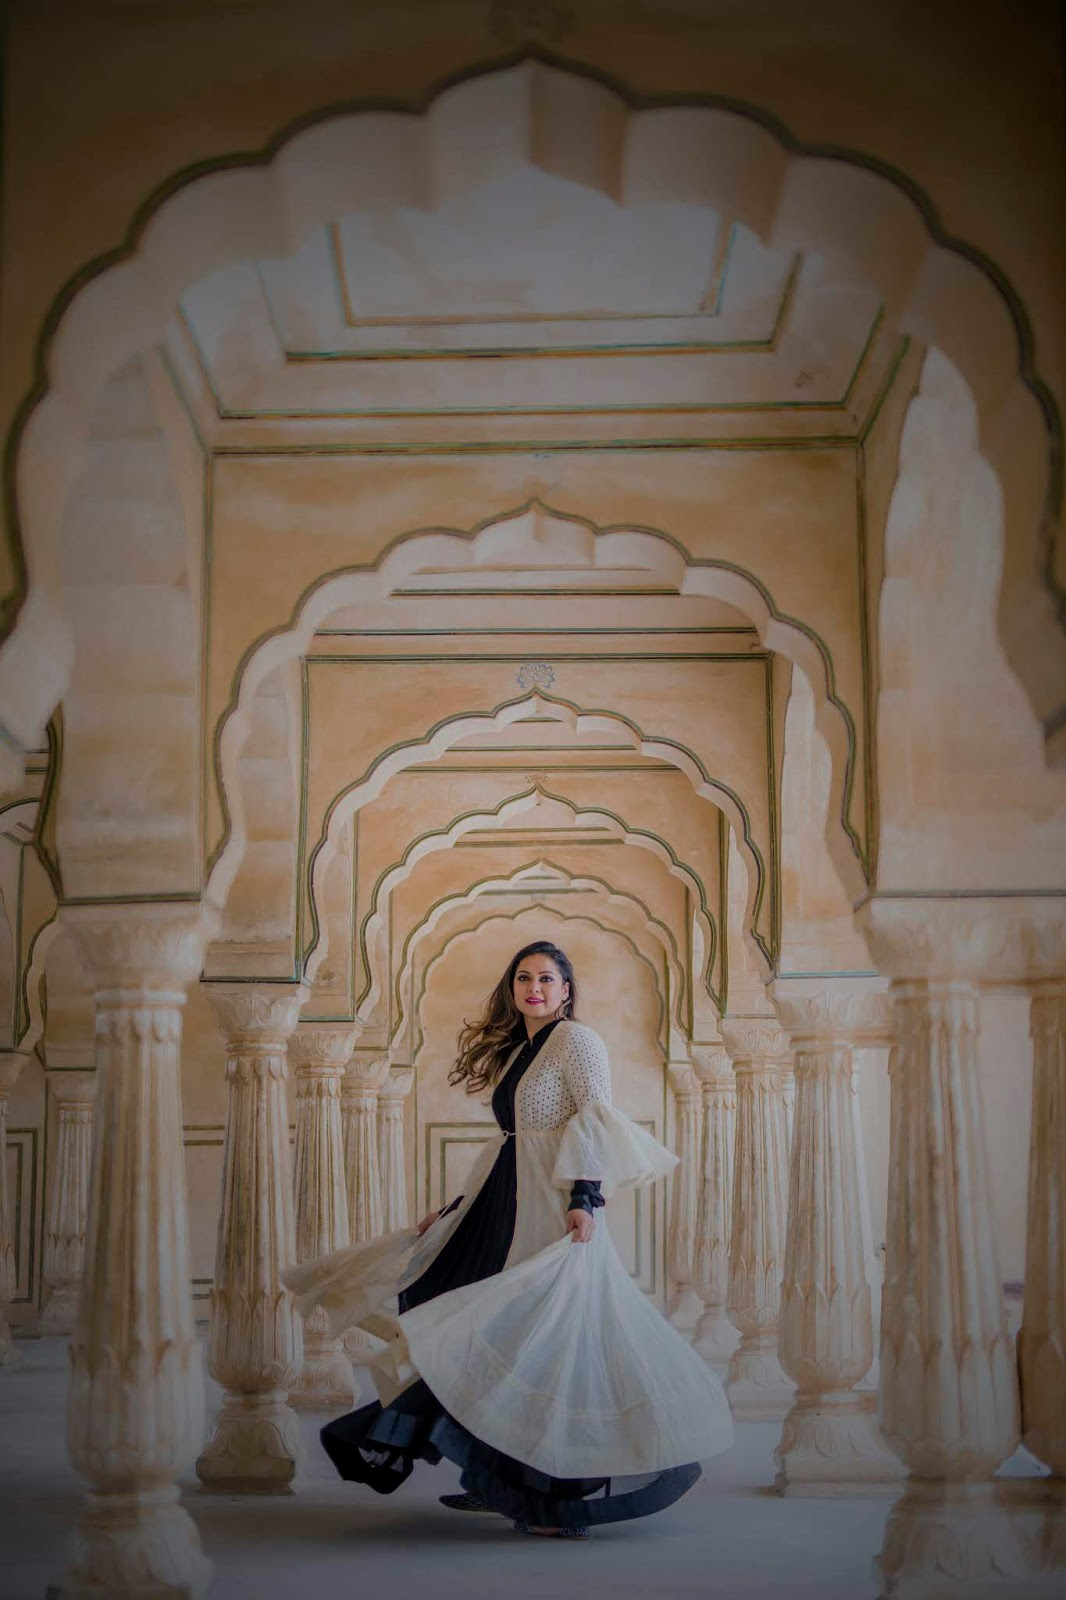 jaipur trip, travel blogger, fashion, style,. myriad musings, amor first, paprika gate, pink city trip, wanderlust, city palace, hawa mahal